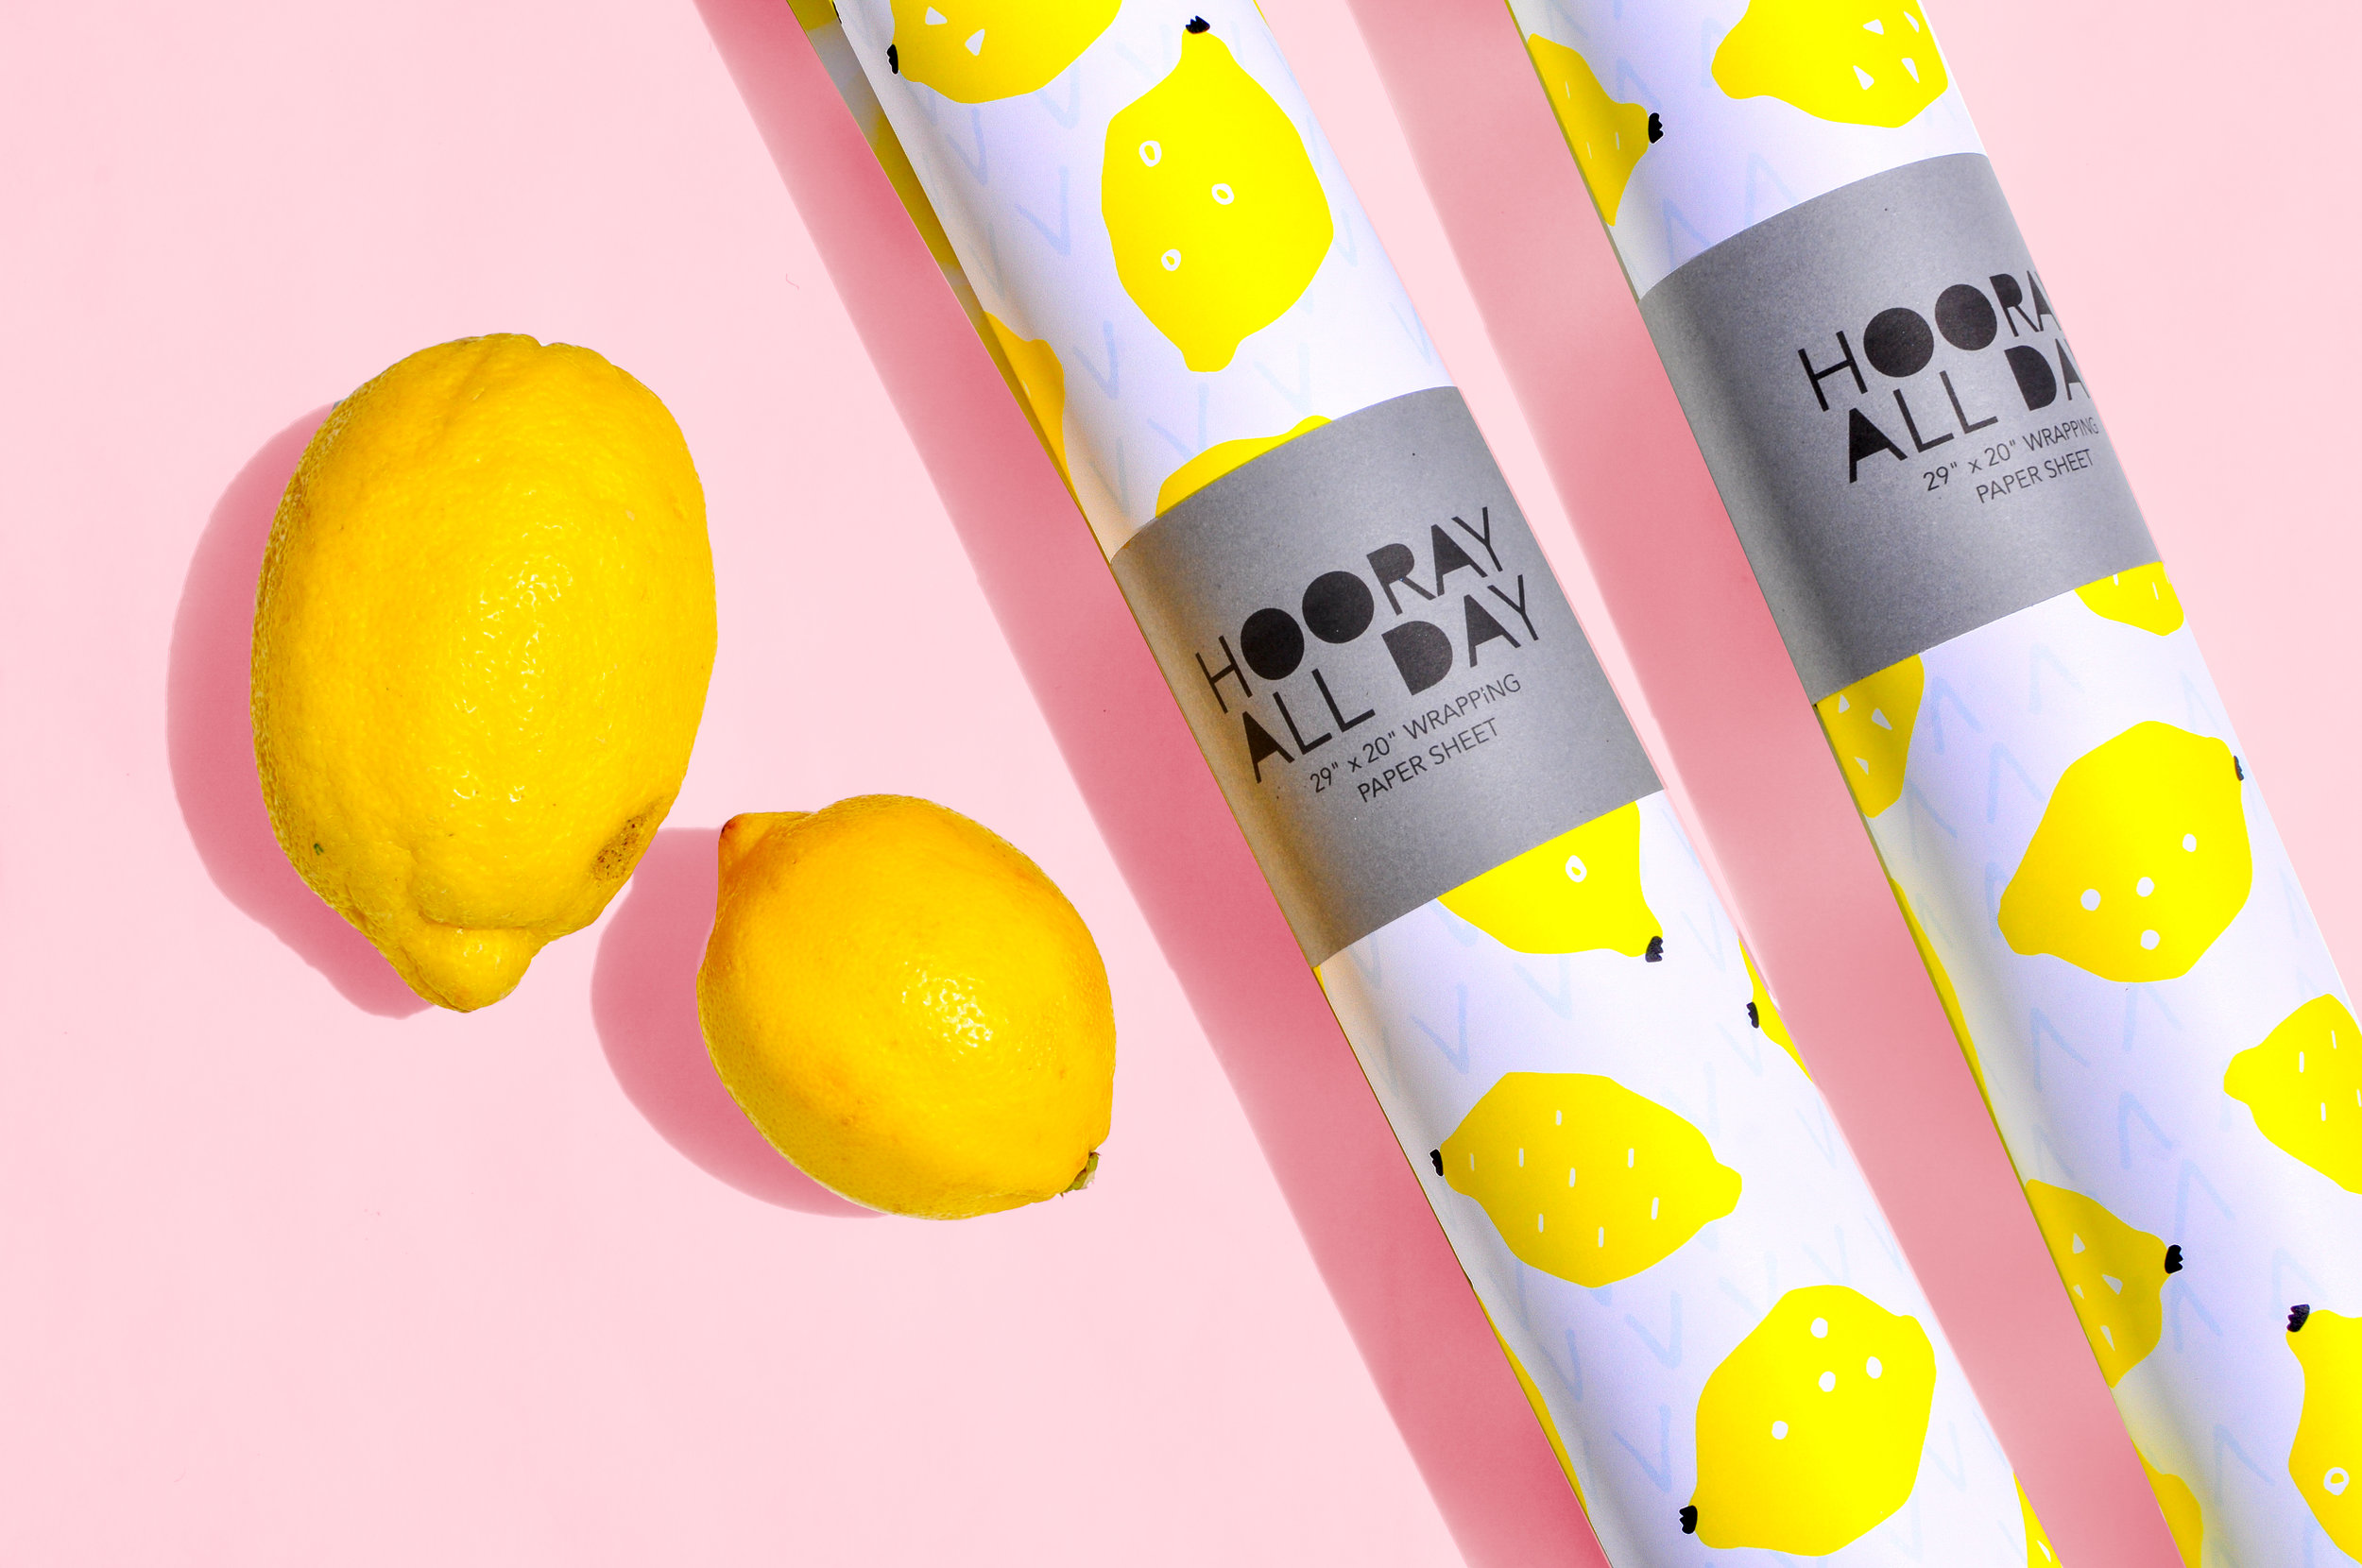 Lemon Wrapping Paper Product Shot Two Rolls with Lemons Pink Background.jpg